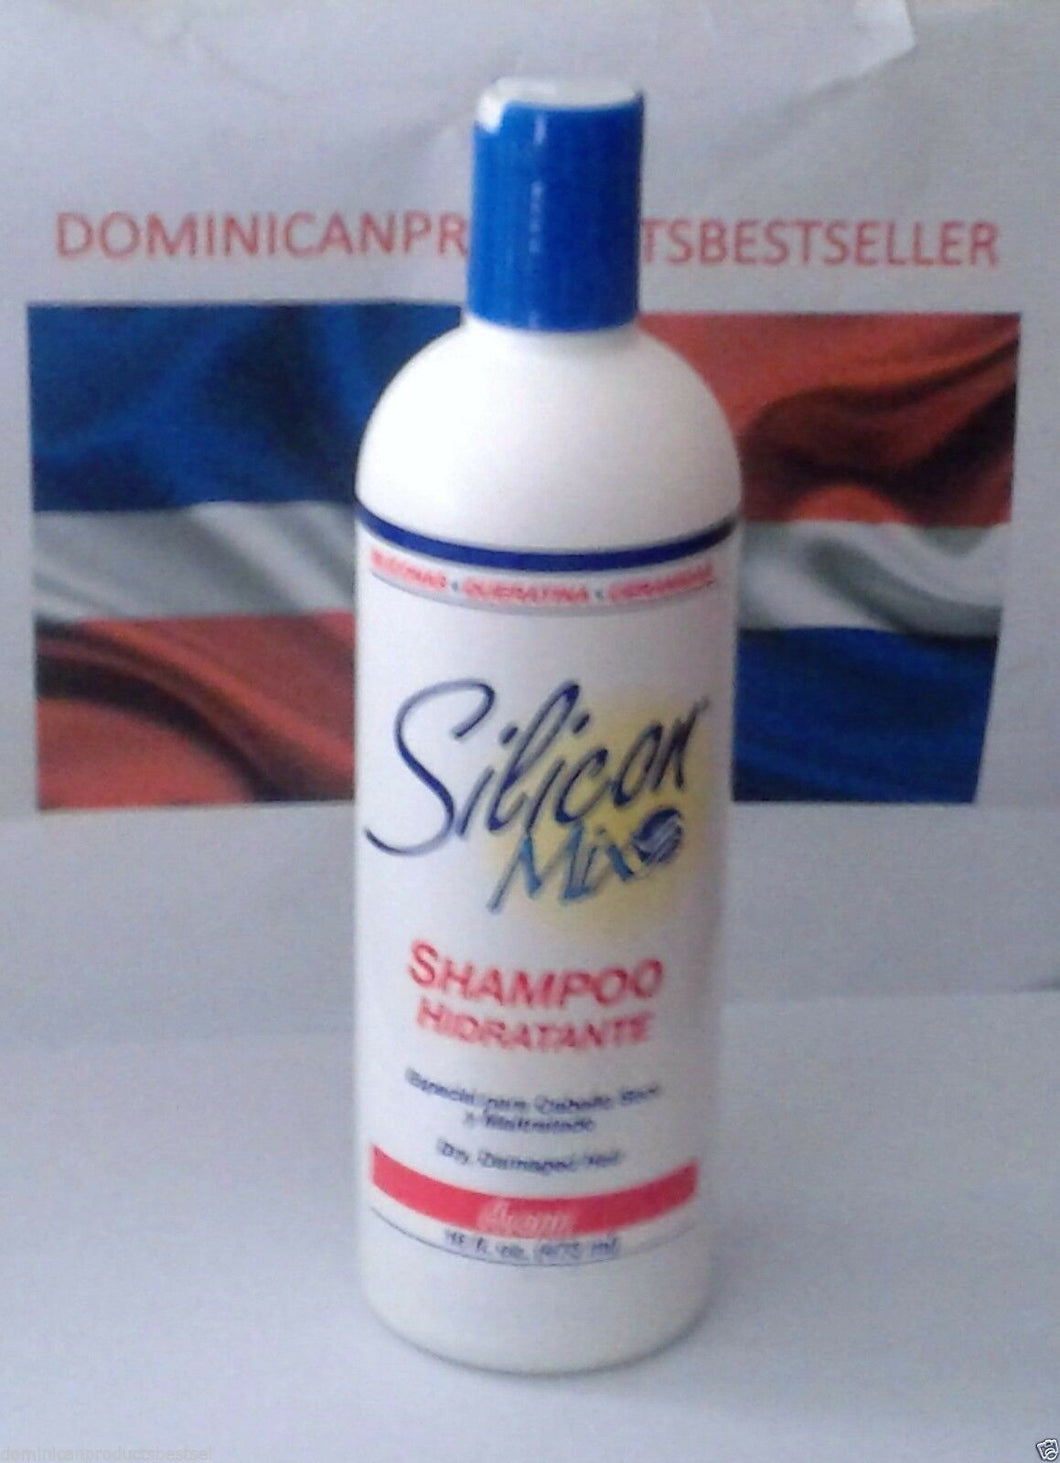 SILICON MIX HAIR HYDRATING SHAMPOO 16 OZ DOMINICAN REPUBLIC BRAZIL